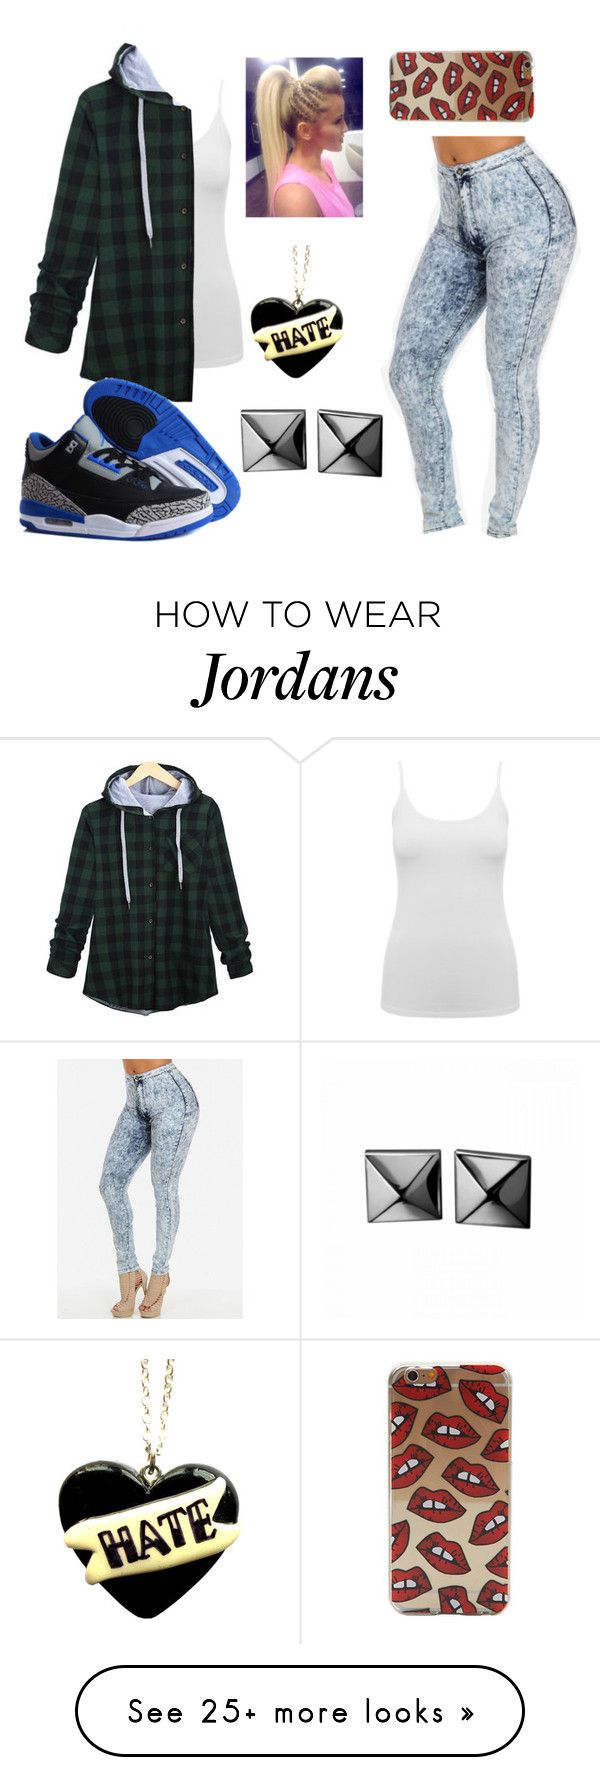 """"""""""" by randombitch1996 on Polyvore featuring M&Co, NIKE, Waterford, women's clothing, women's fashion, women, female, woman, misses and juniors"""